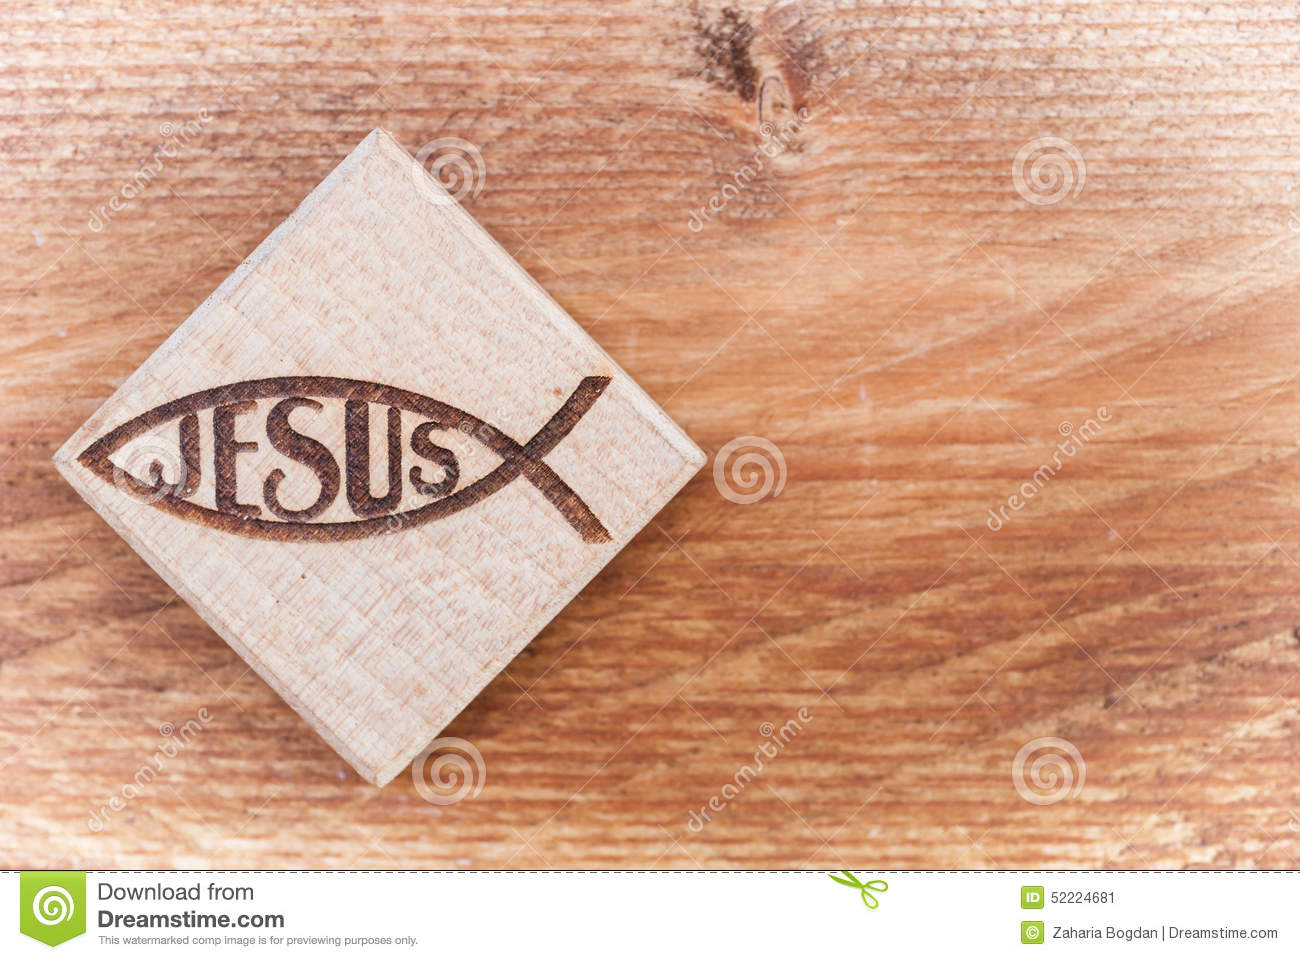 Christian fish stock images 481 photos christian fish symbol carved in wood on white vintage wooden background shallow depth of field biocorpaavc